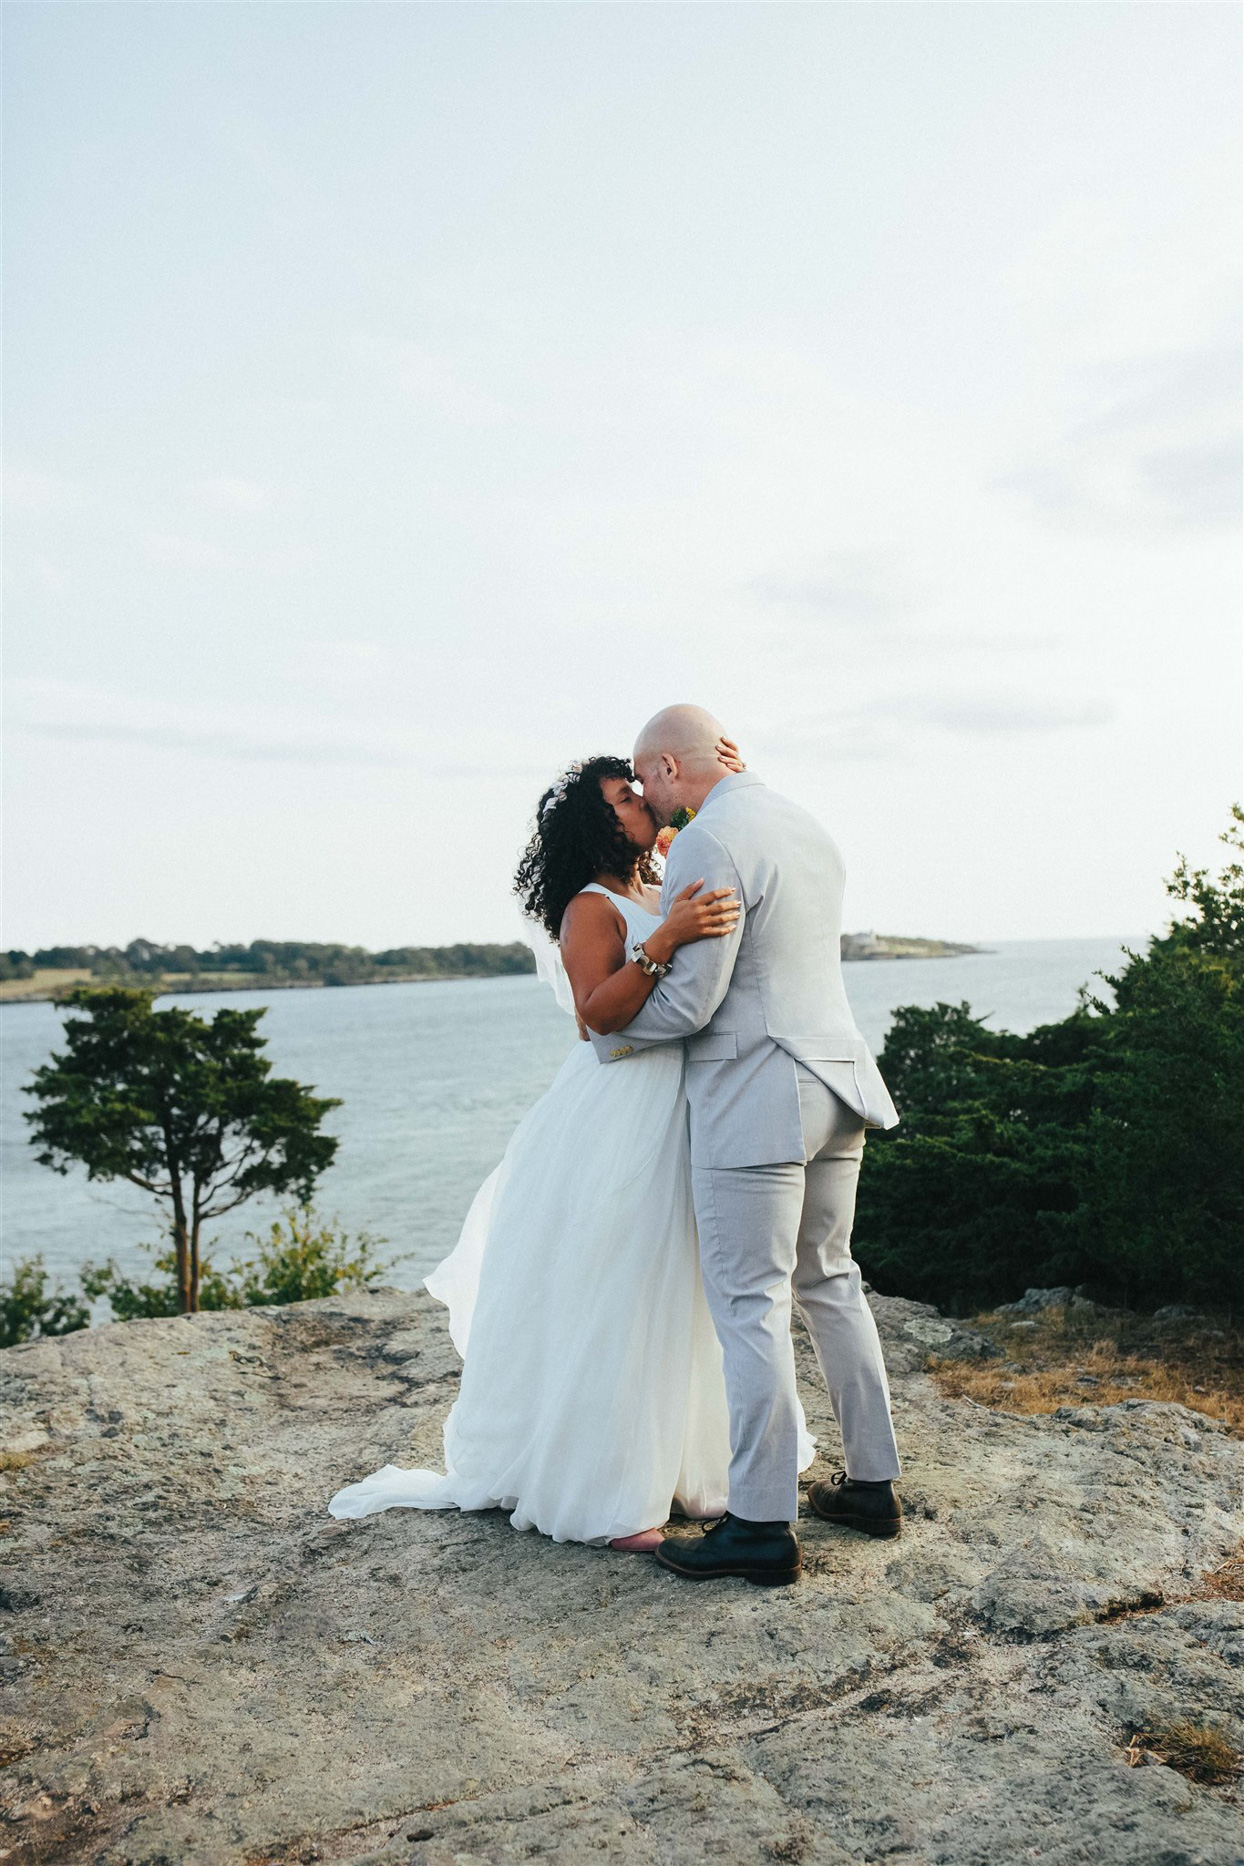 wedding couple kissing on rock overlooking water